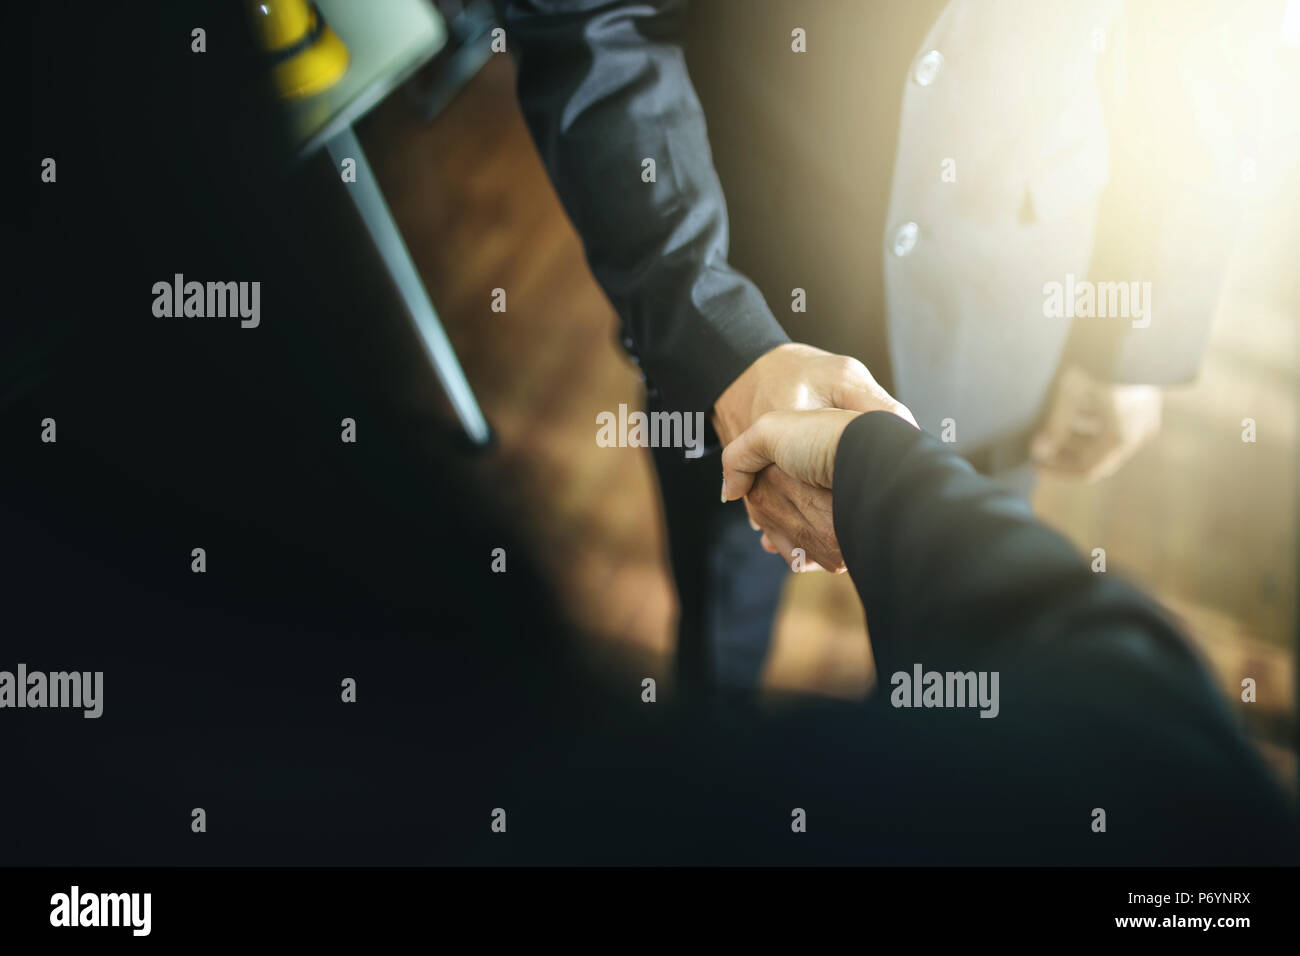 Business handshake and business people.Vintage tone Retro filter effect,soft focus,low light. handshake in office. success concept. - Stock Image